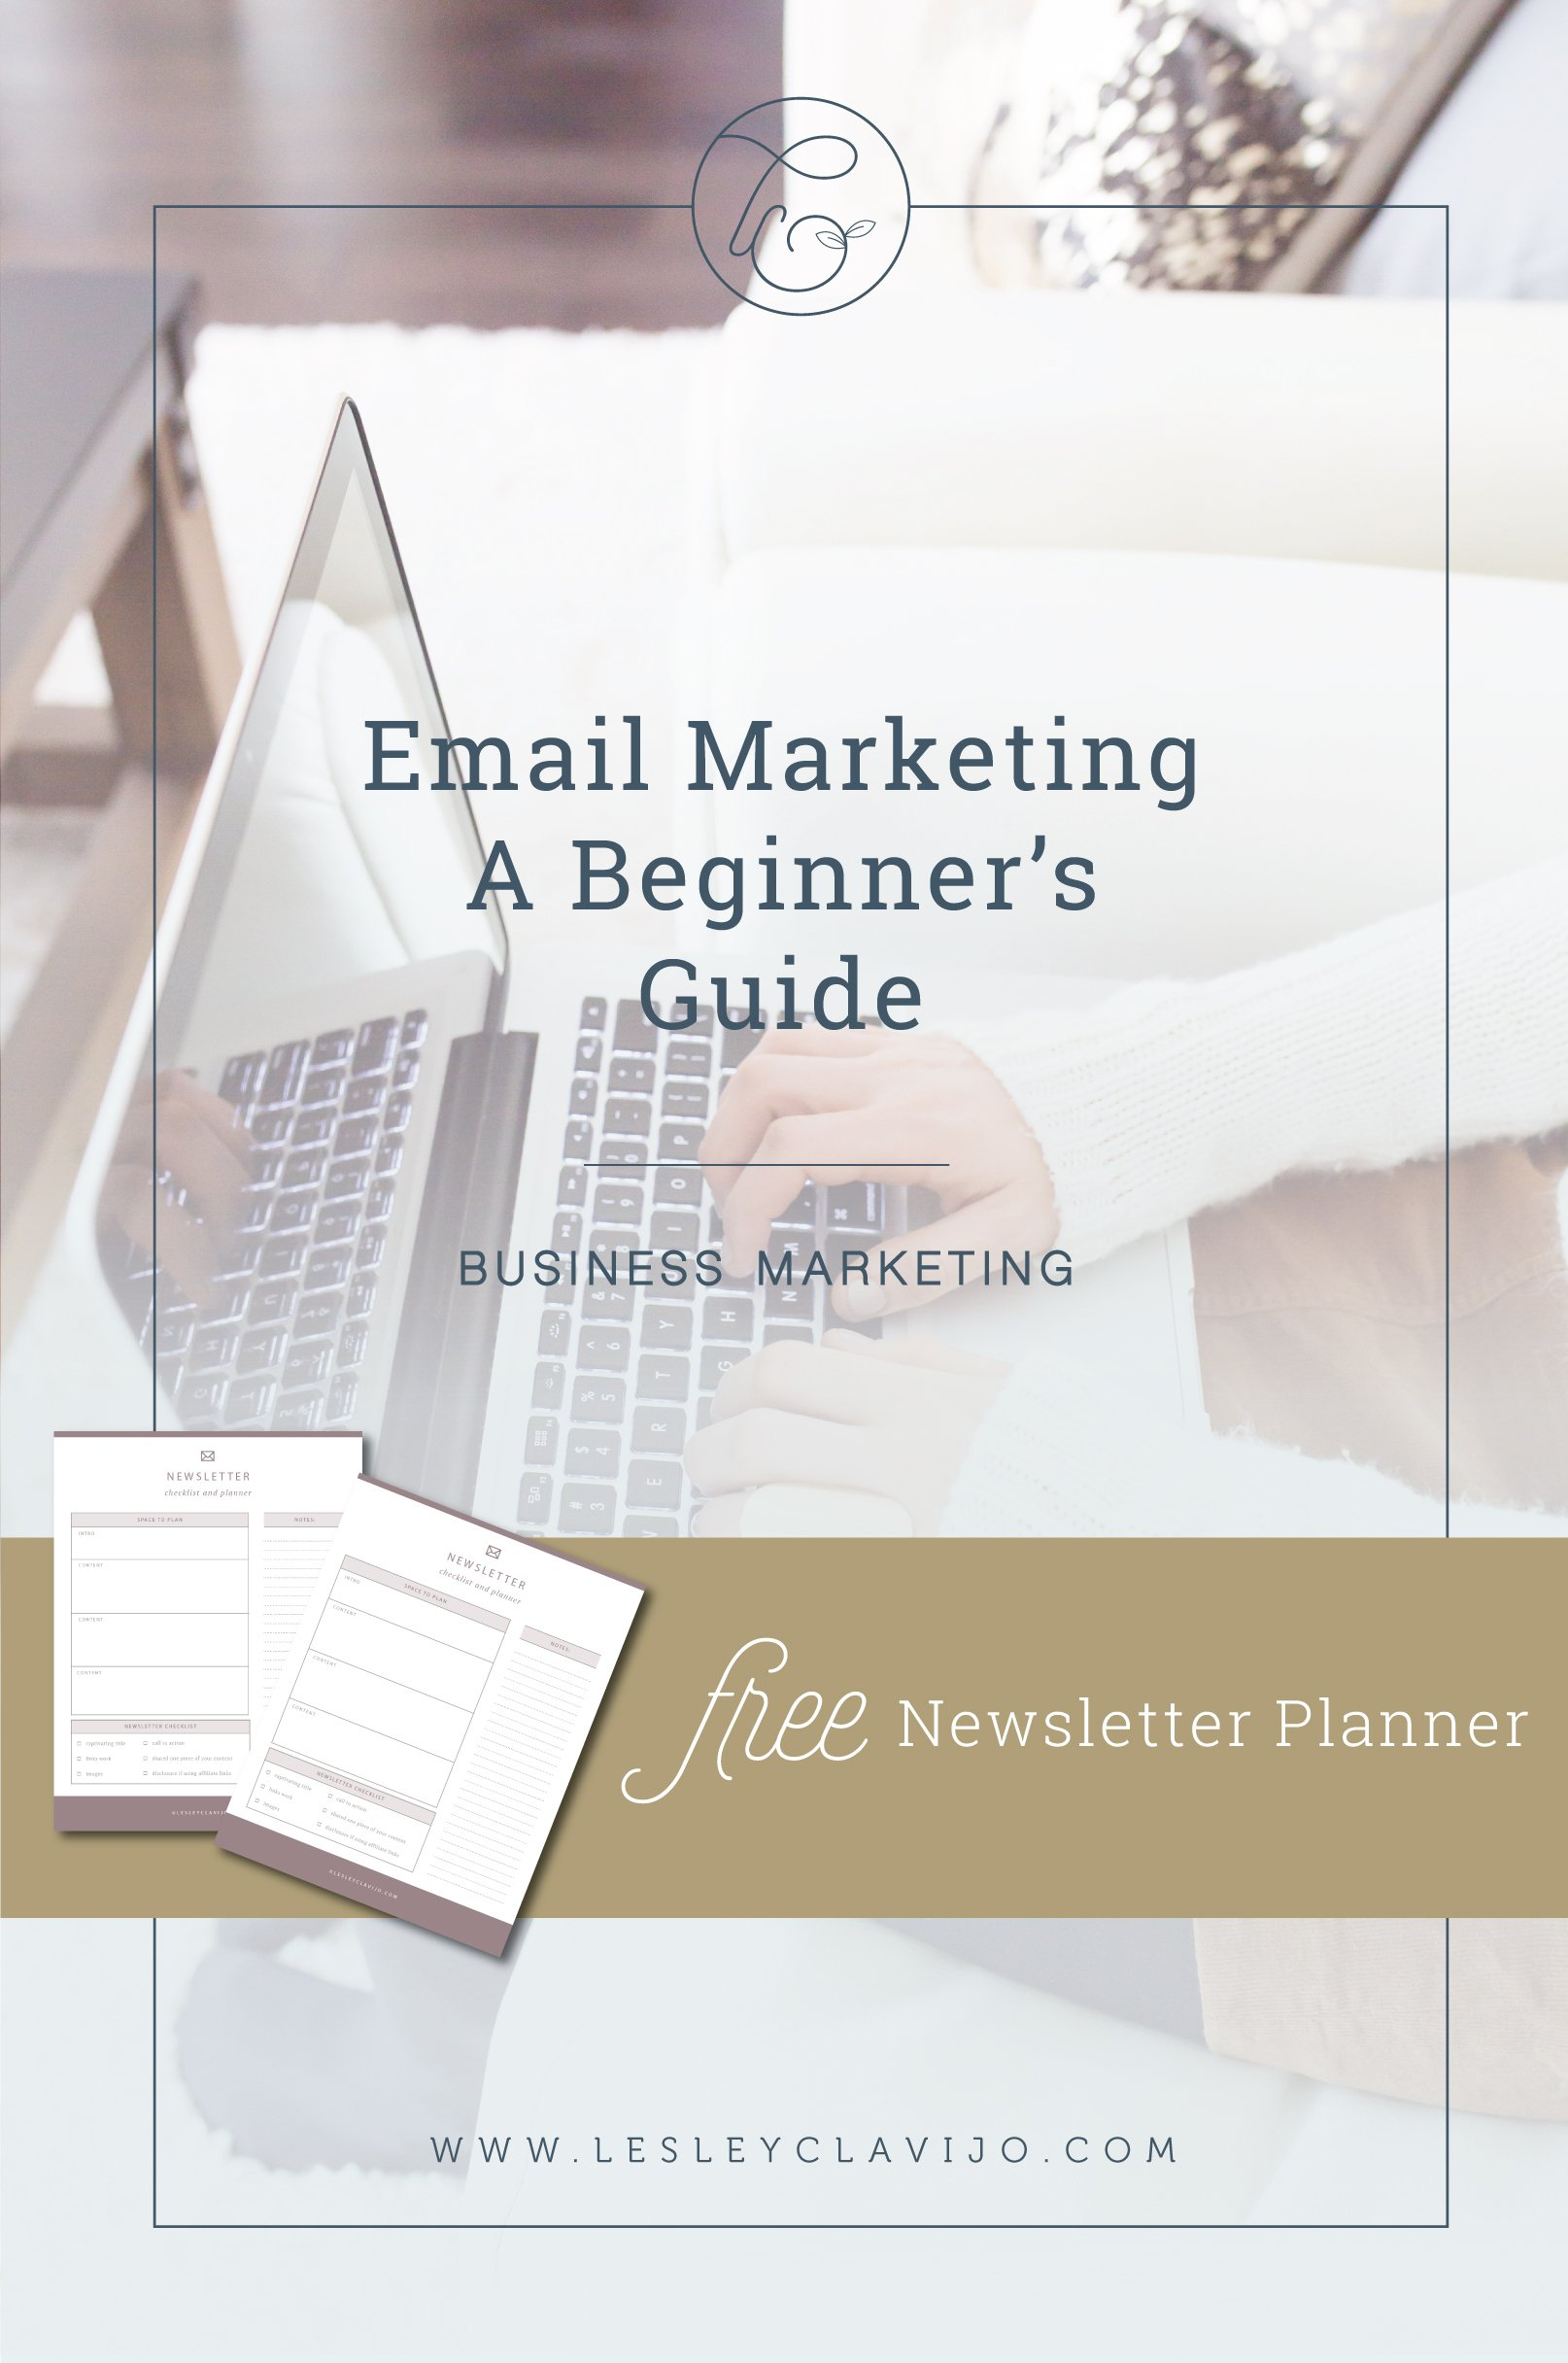 Email Marketing A Beginner's Guide